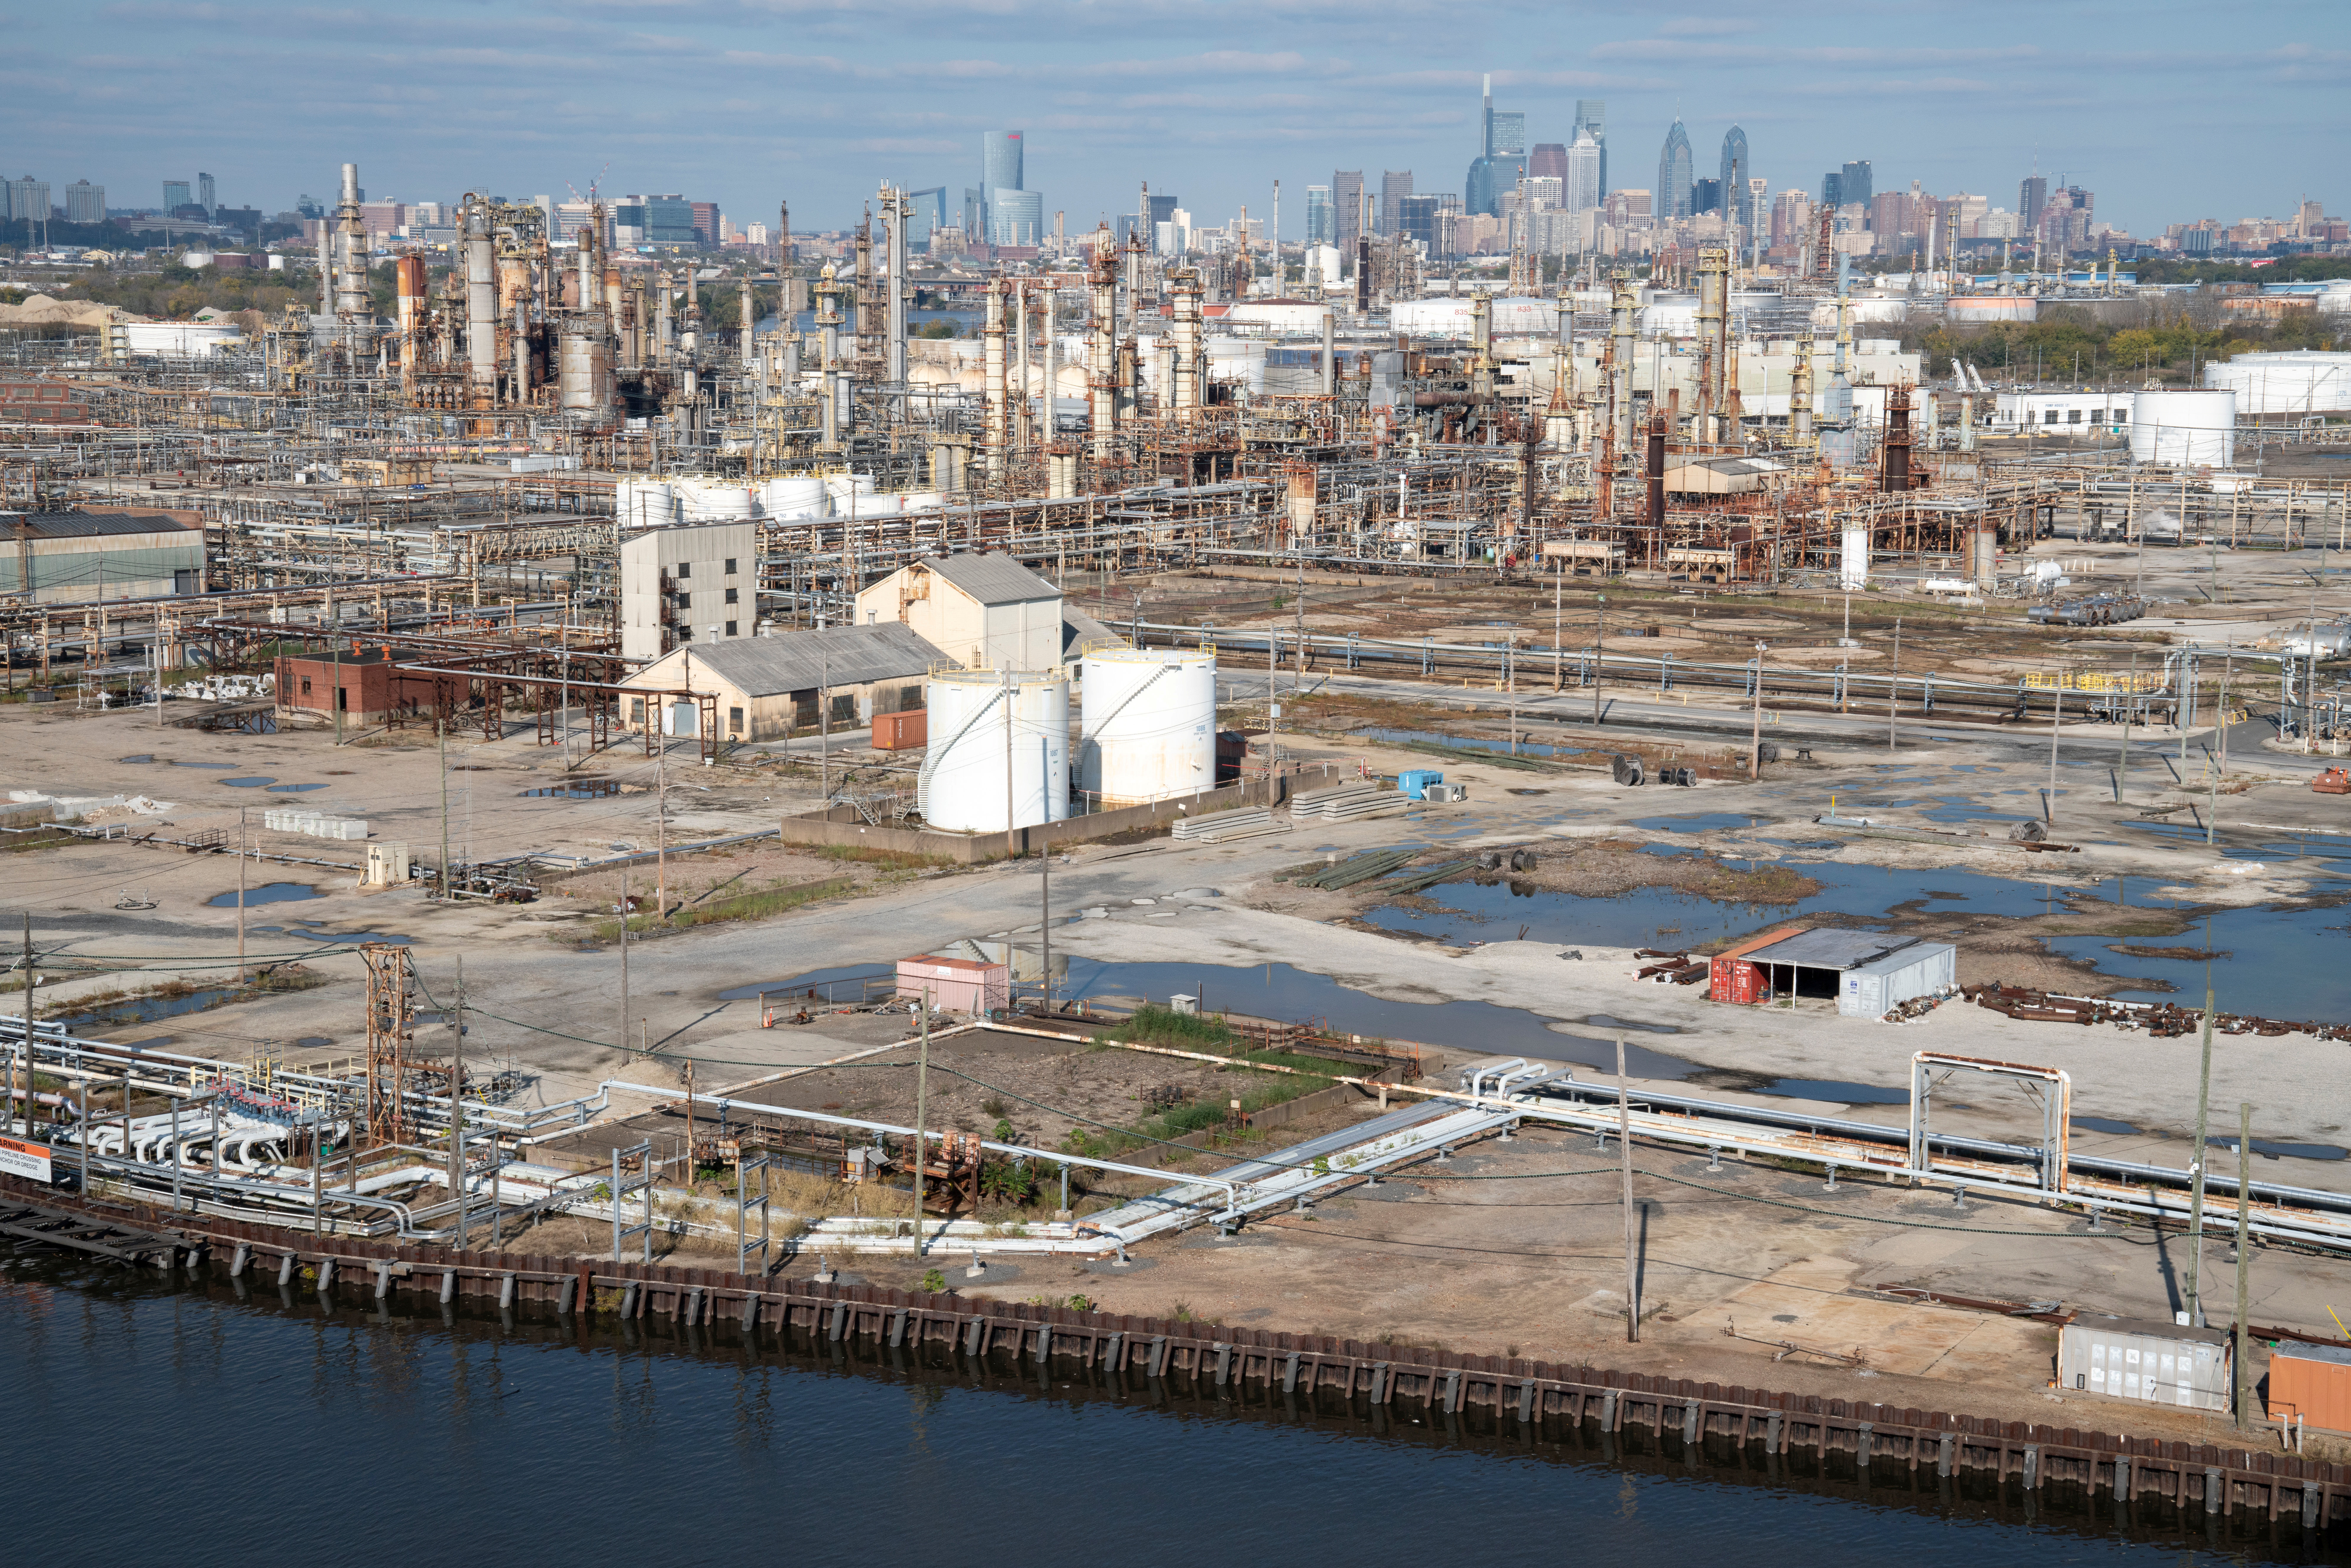 A general view of the PES Refinery on the banks of the Schuylkill River in Philadelphia, Pennsylvania, U.S., October 31, 2020. Picture taken October 31, 2020. REUTERS/Dane Rhys